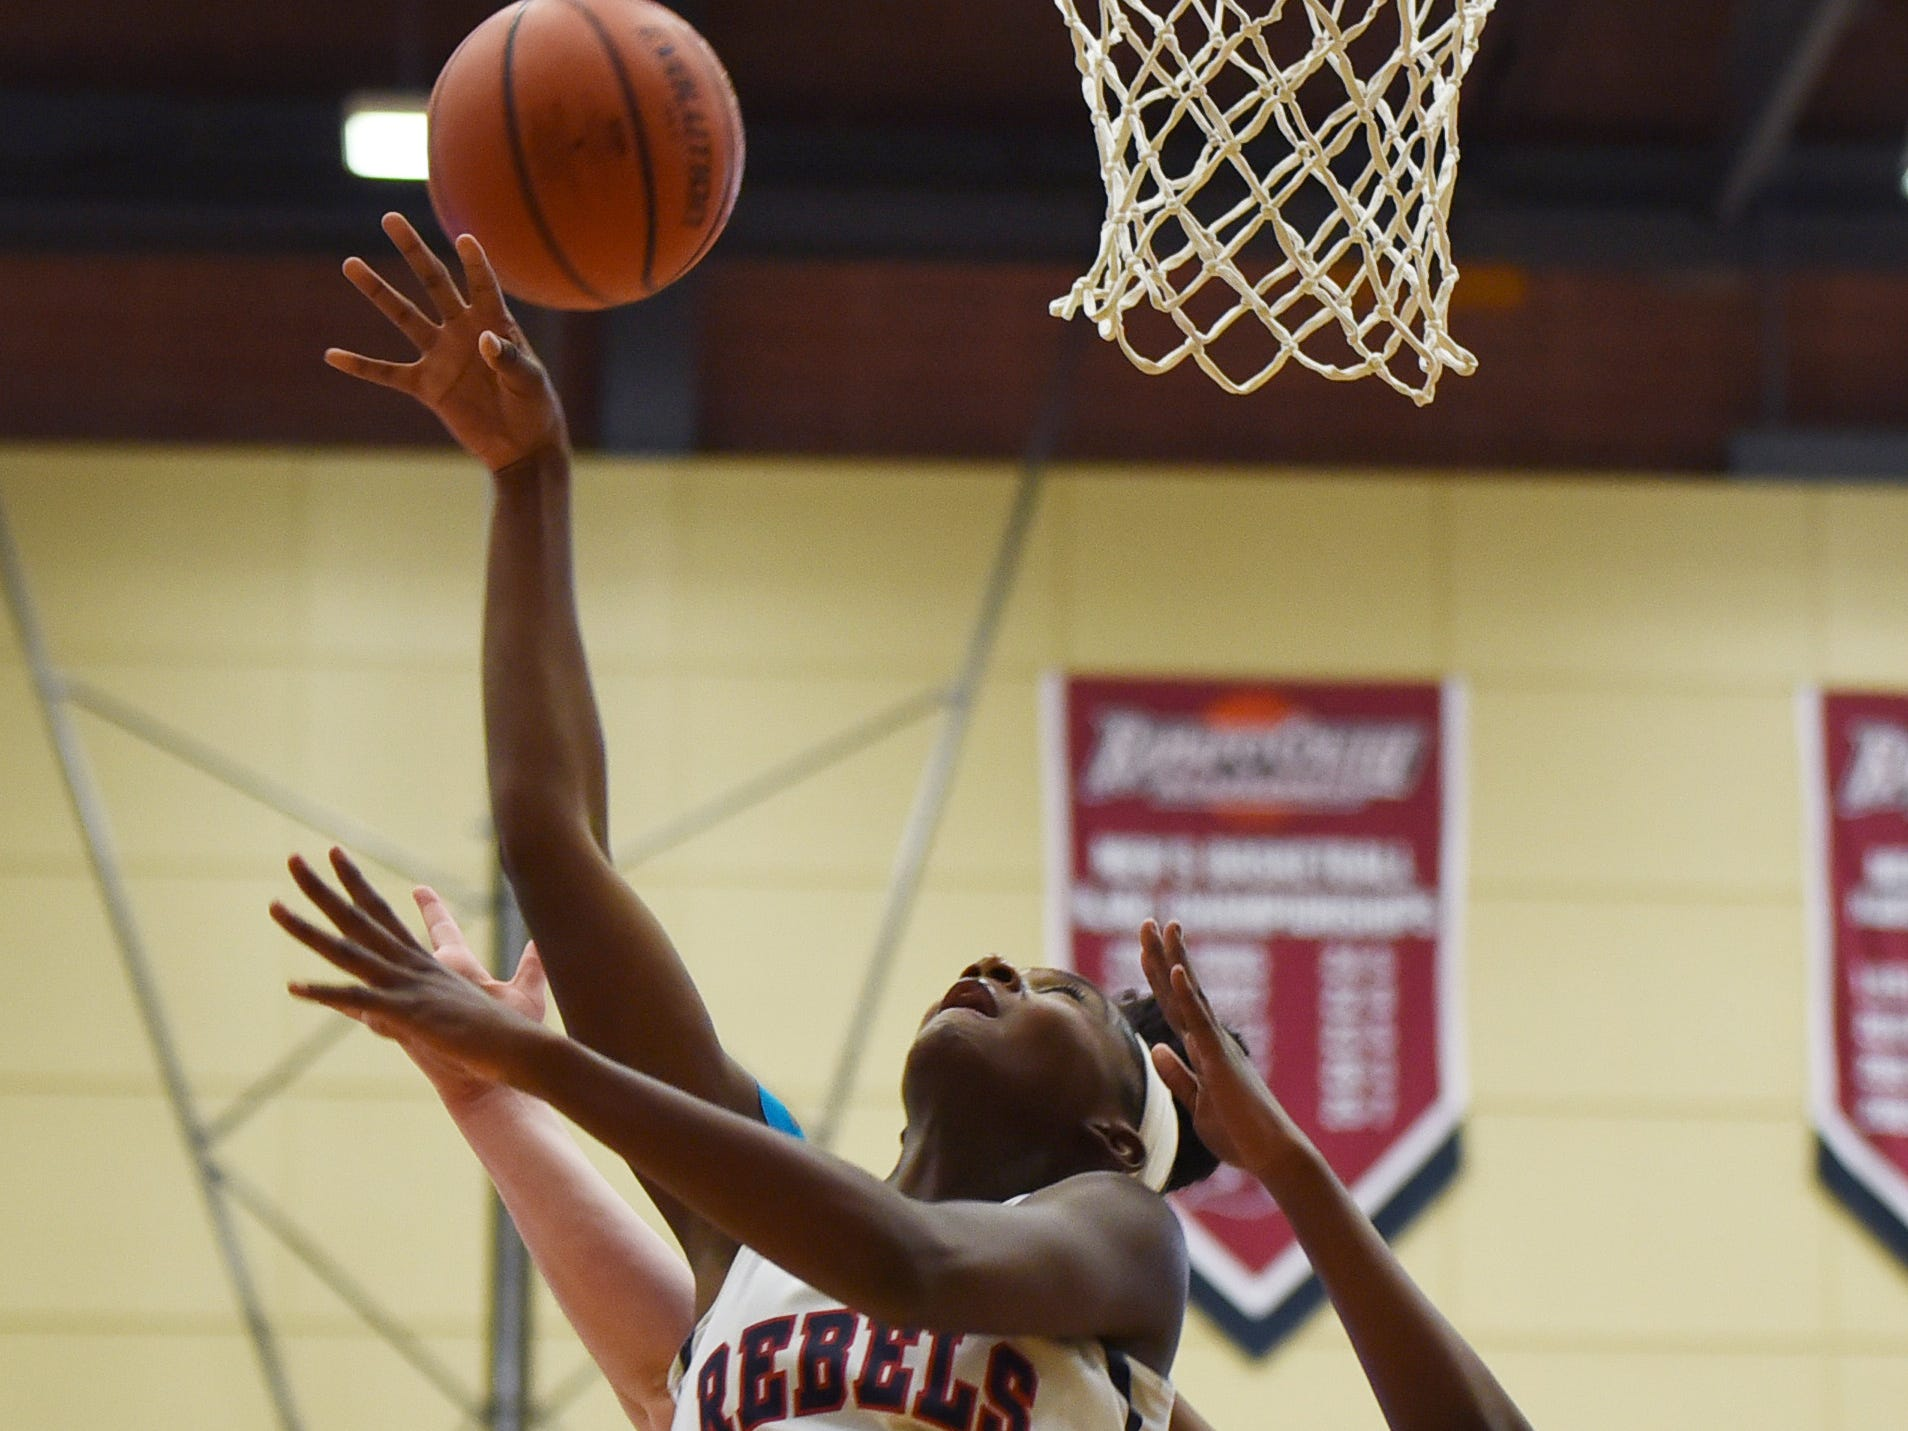 Jaida Patrick (no.3) of Saddle River Day makes a shot against Paramus Catholic in the first half during the 2019 Bergen County girls basketball championship semifinal at Ramapo College in Mahwah on 02/10/19.